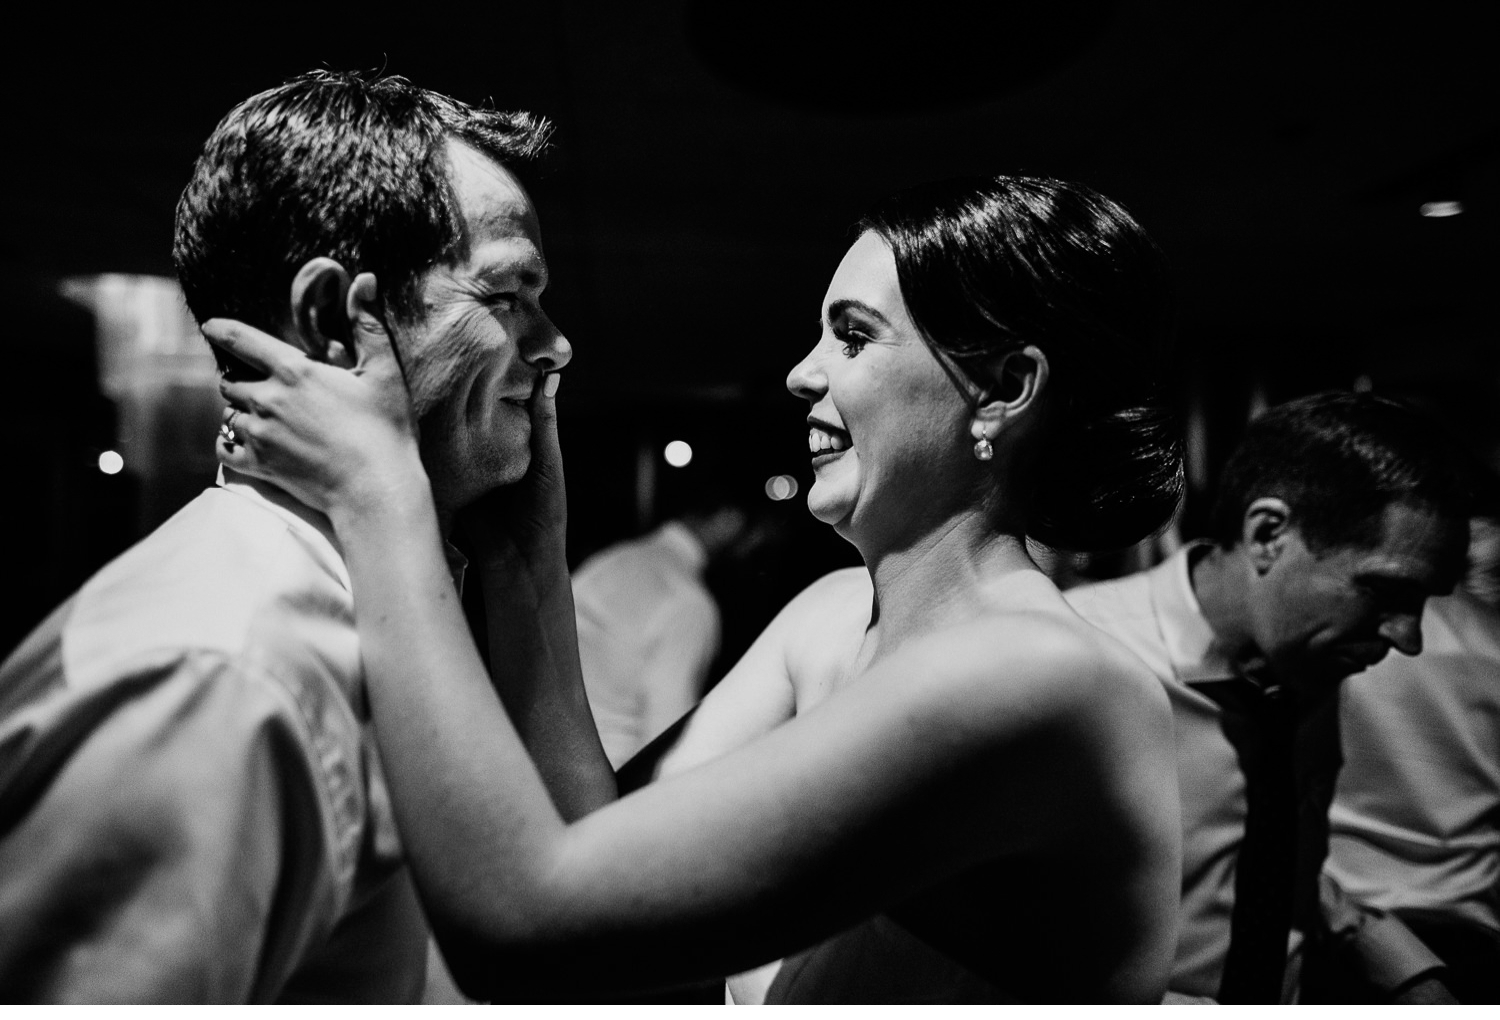 Morgan Roberts Photography_Wedding_nishi gallery hotel hotel_Jay and Lucy 5838.jpg